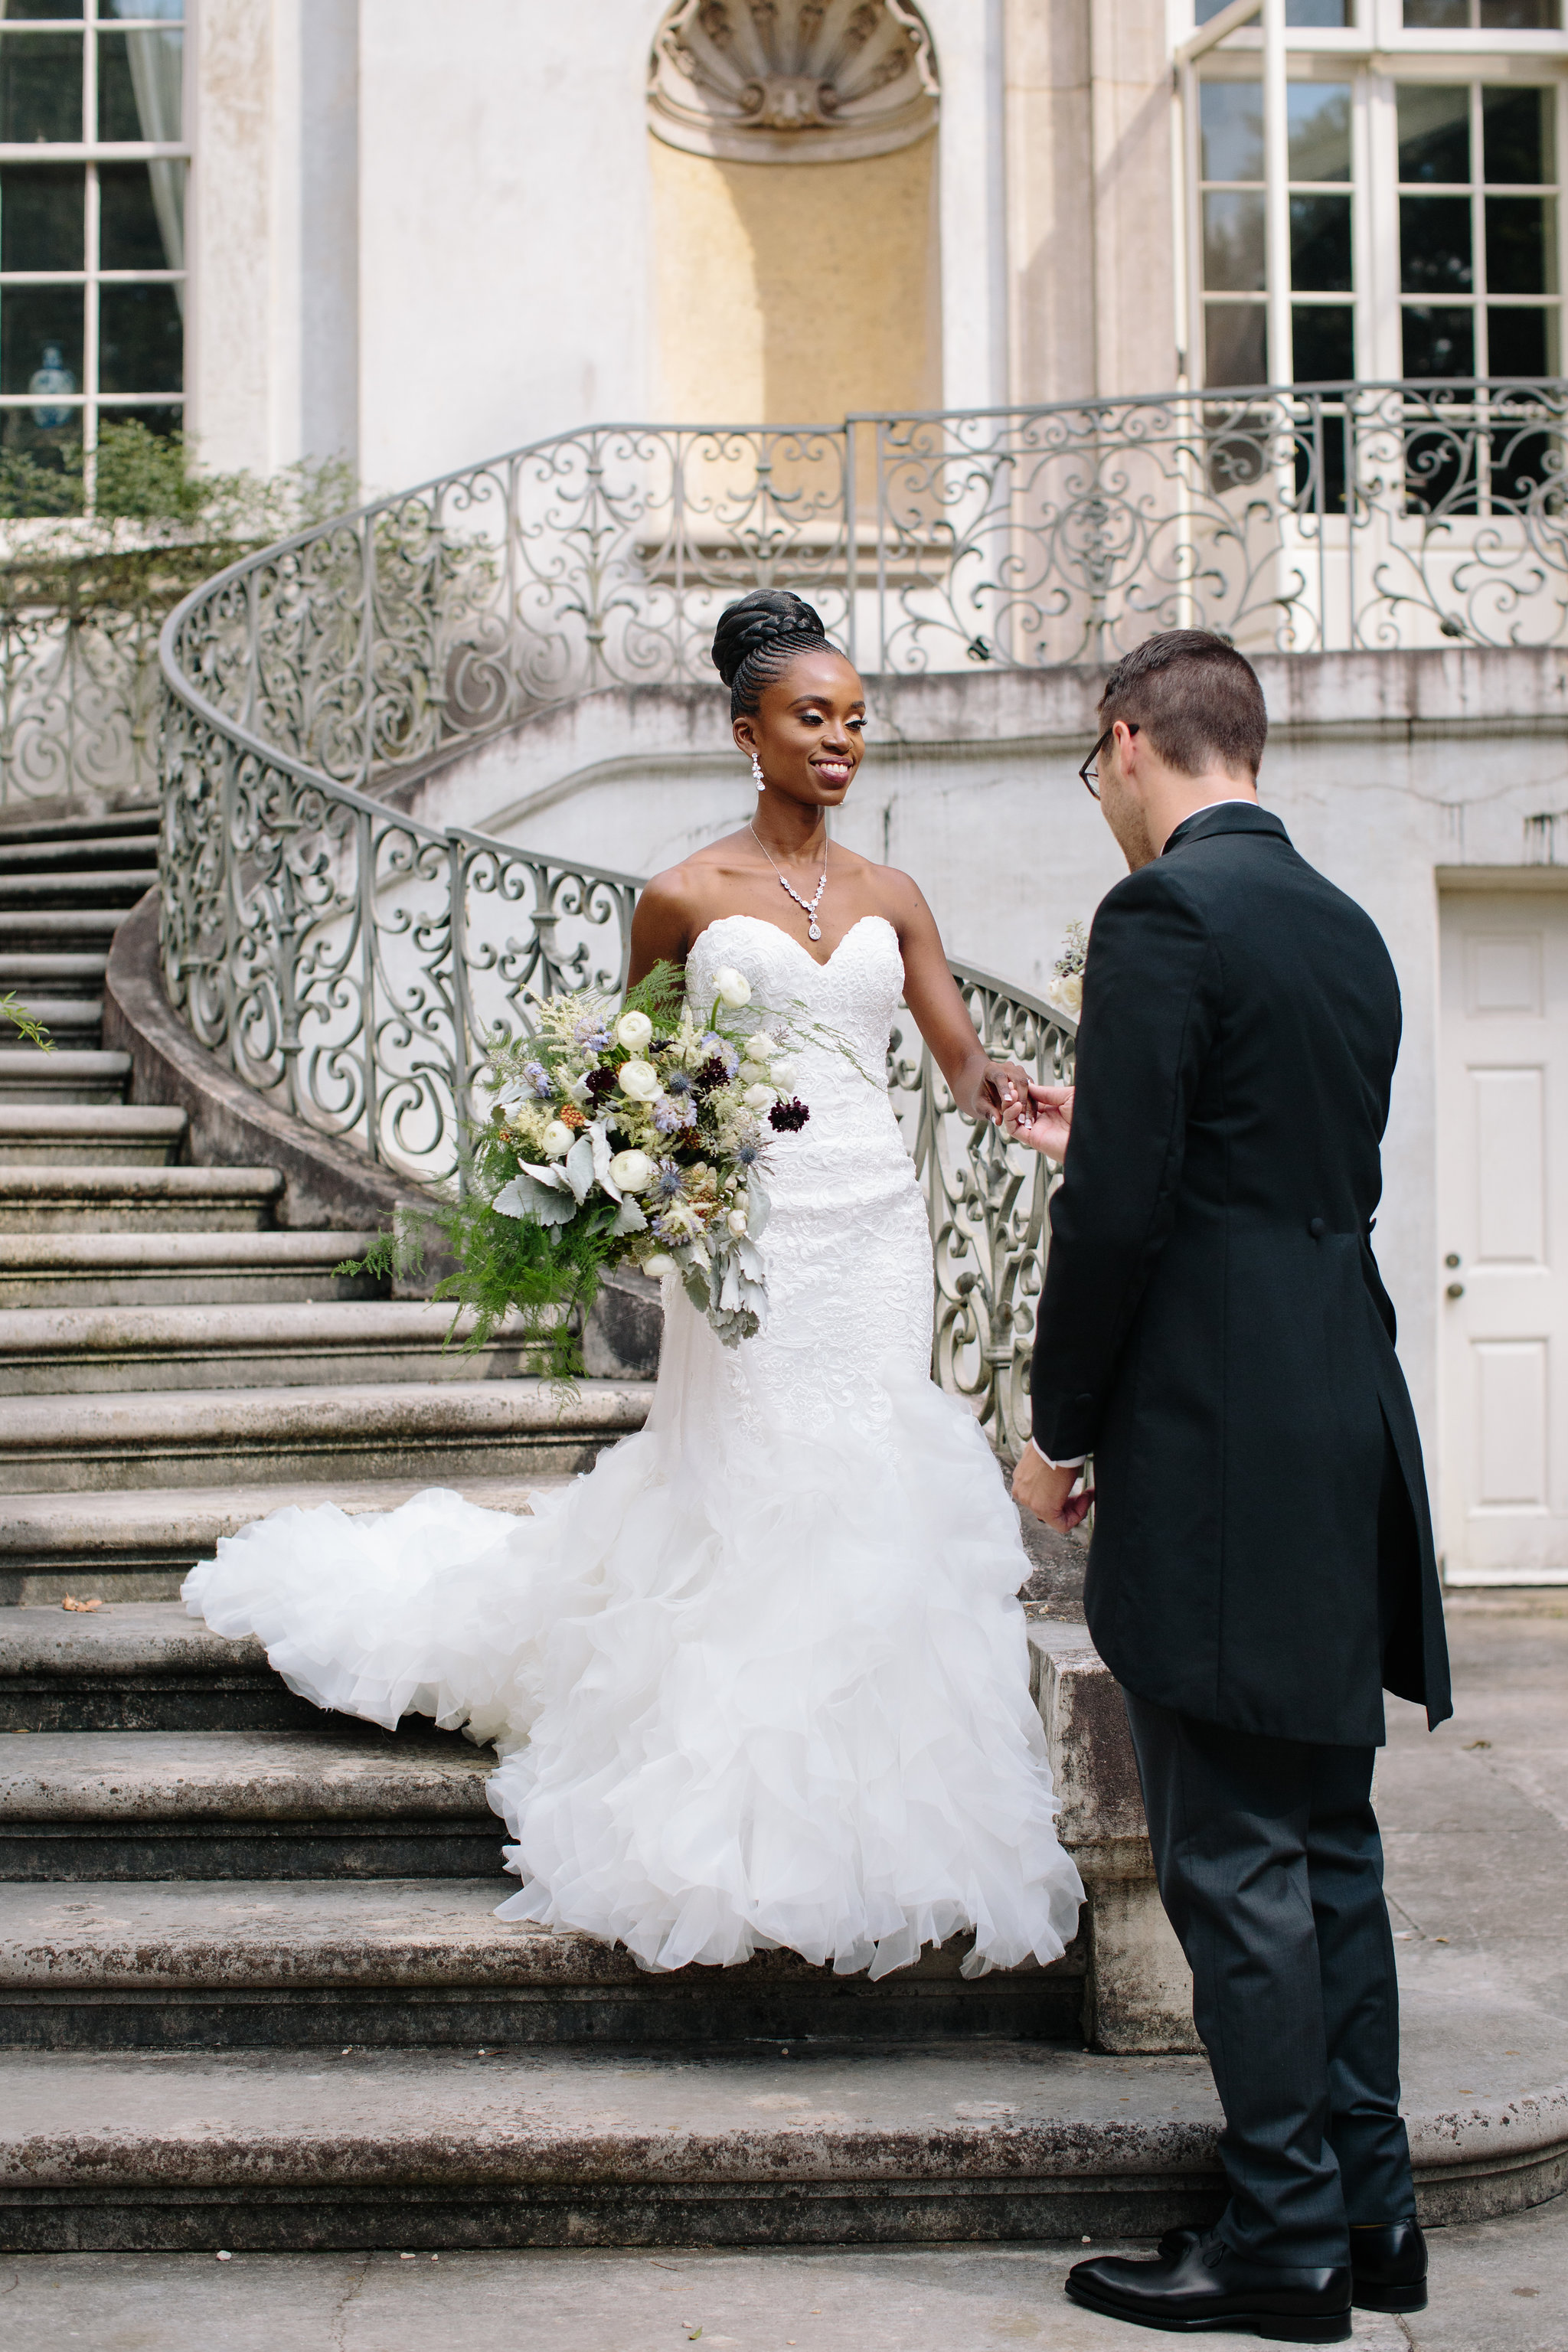 Irene + Chris | Swan House | Floral + Design